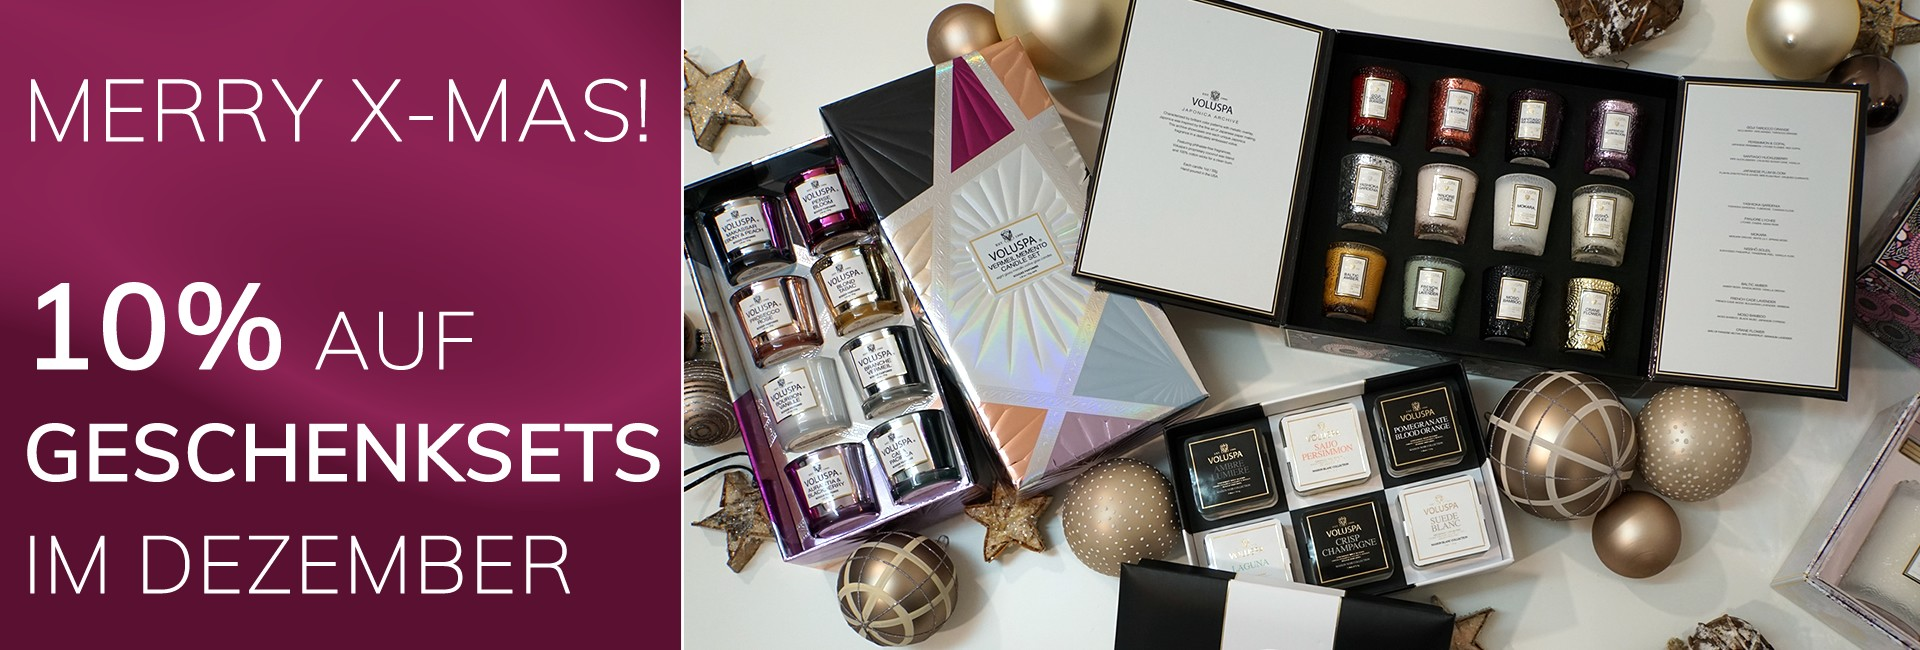 MERRY X-MAS! 10% ON ALL GIFT SETS IN DECEMBER